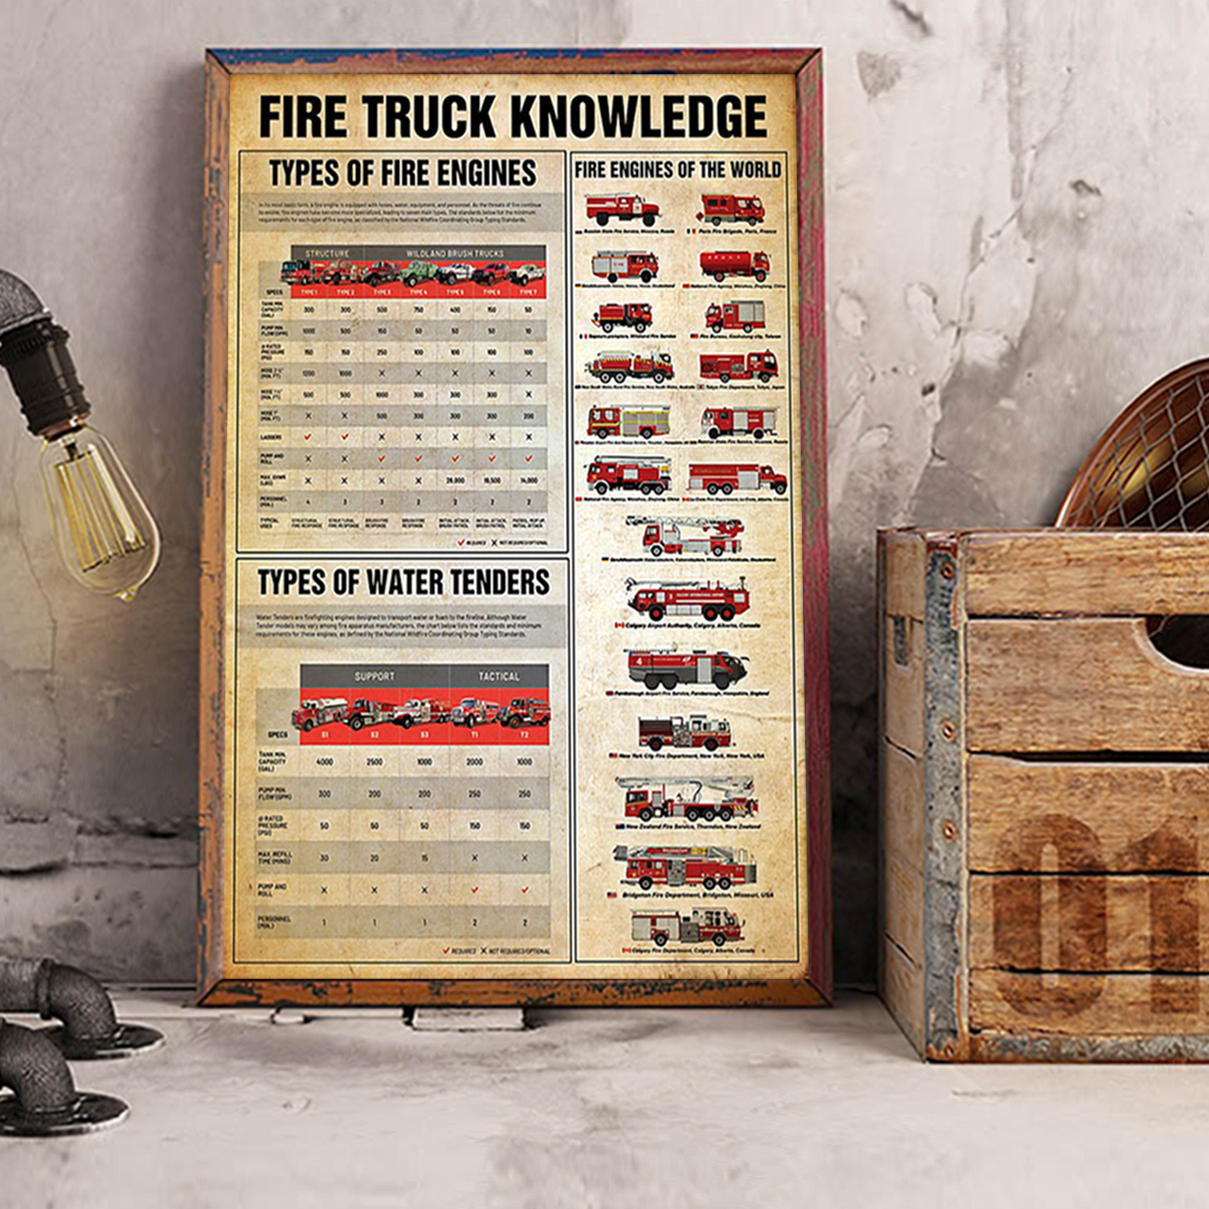 Firefighter fire truck knowledge poster A2